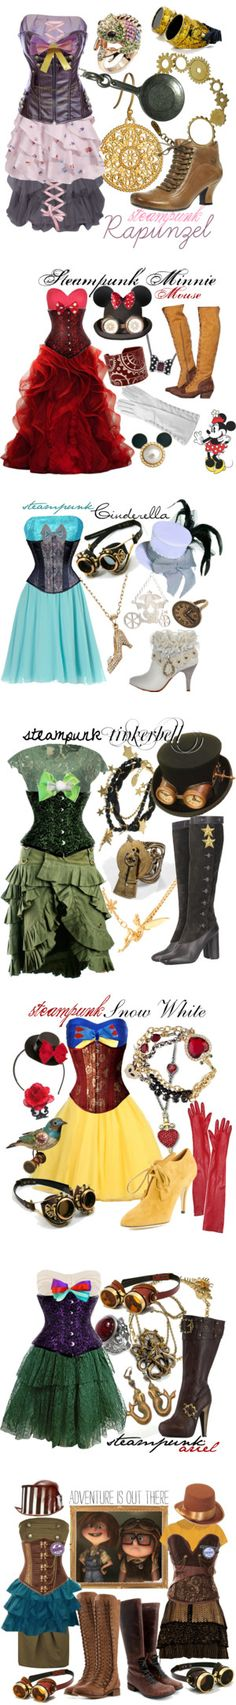 """Disney Steampunk"" by princesschandler on Polyvore (Fun eye candy & inspiration!)"